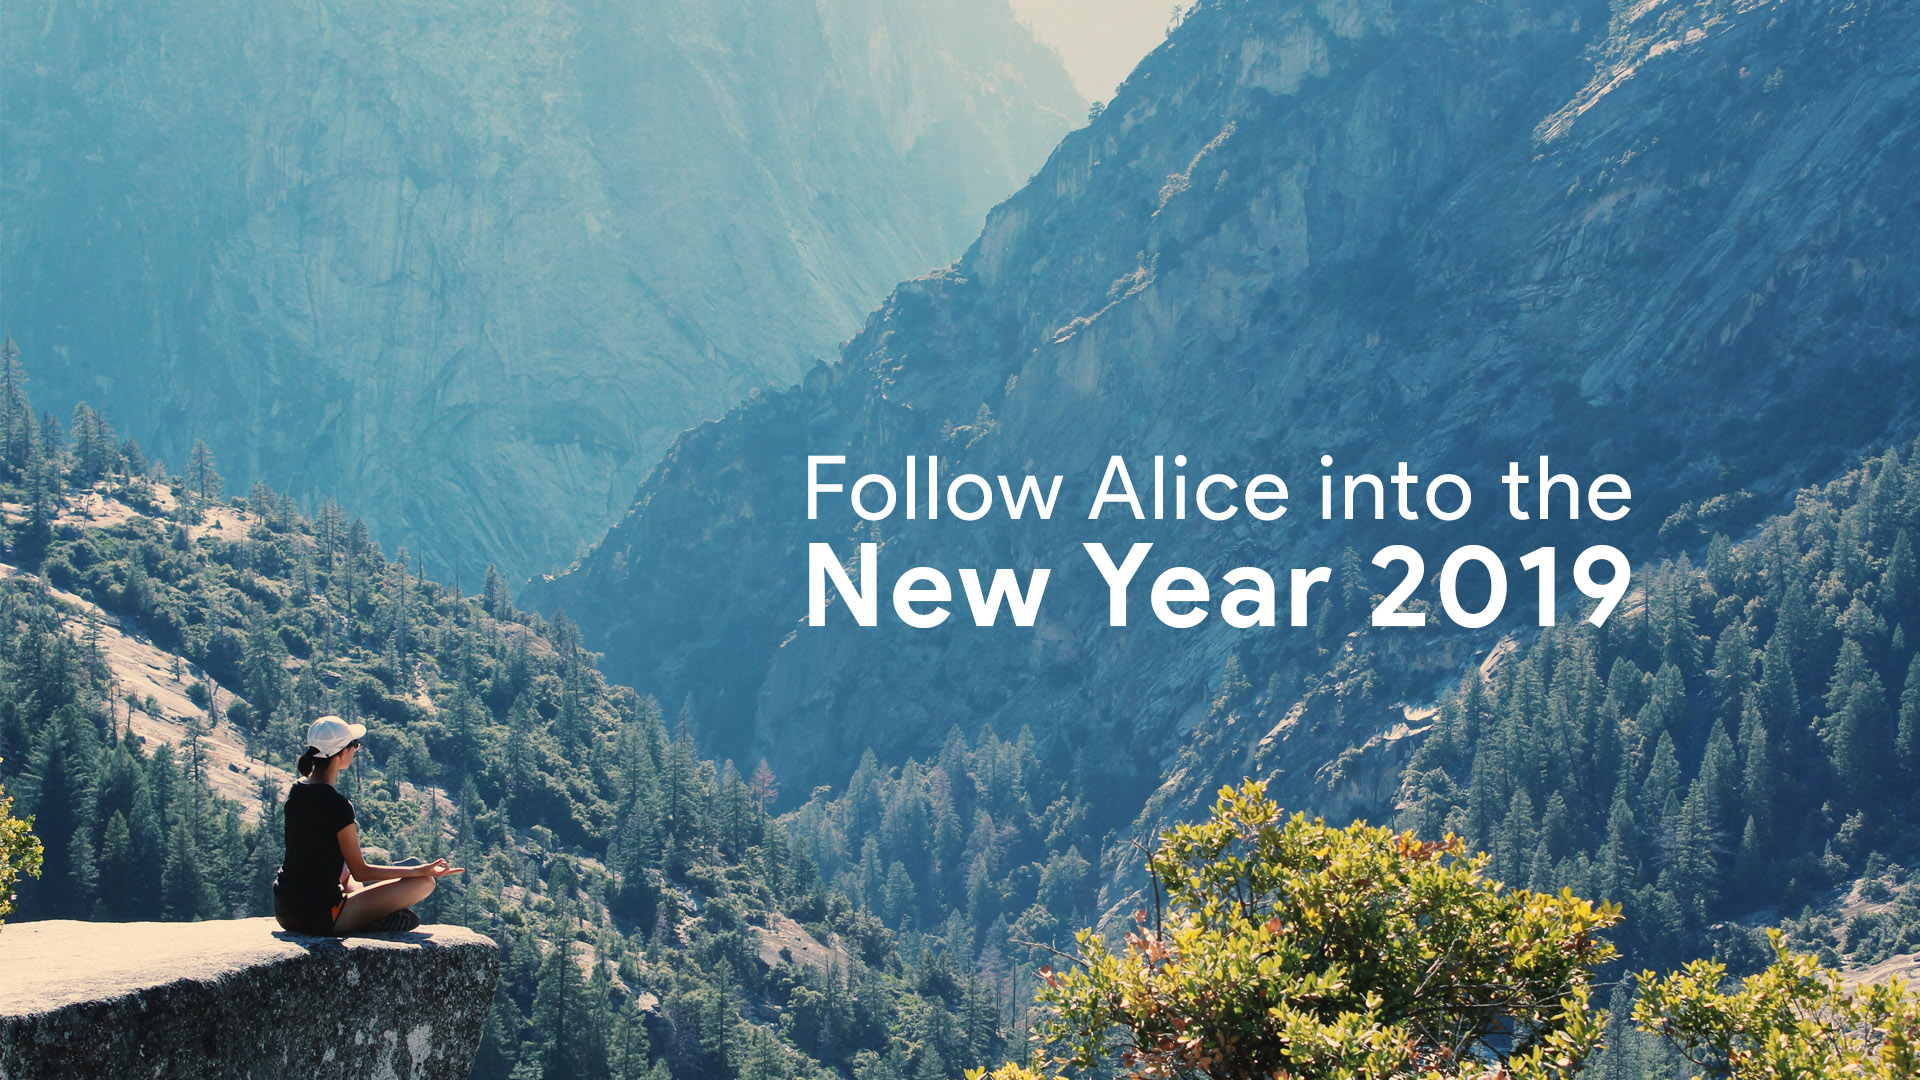 Follow Alice into the New Year 2019